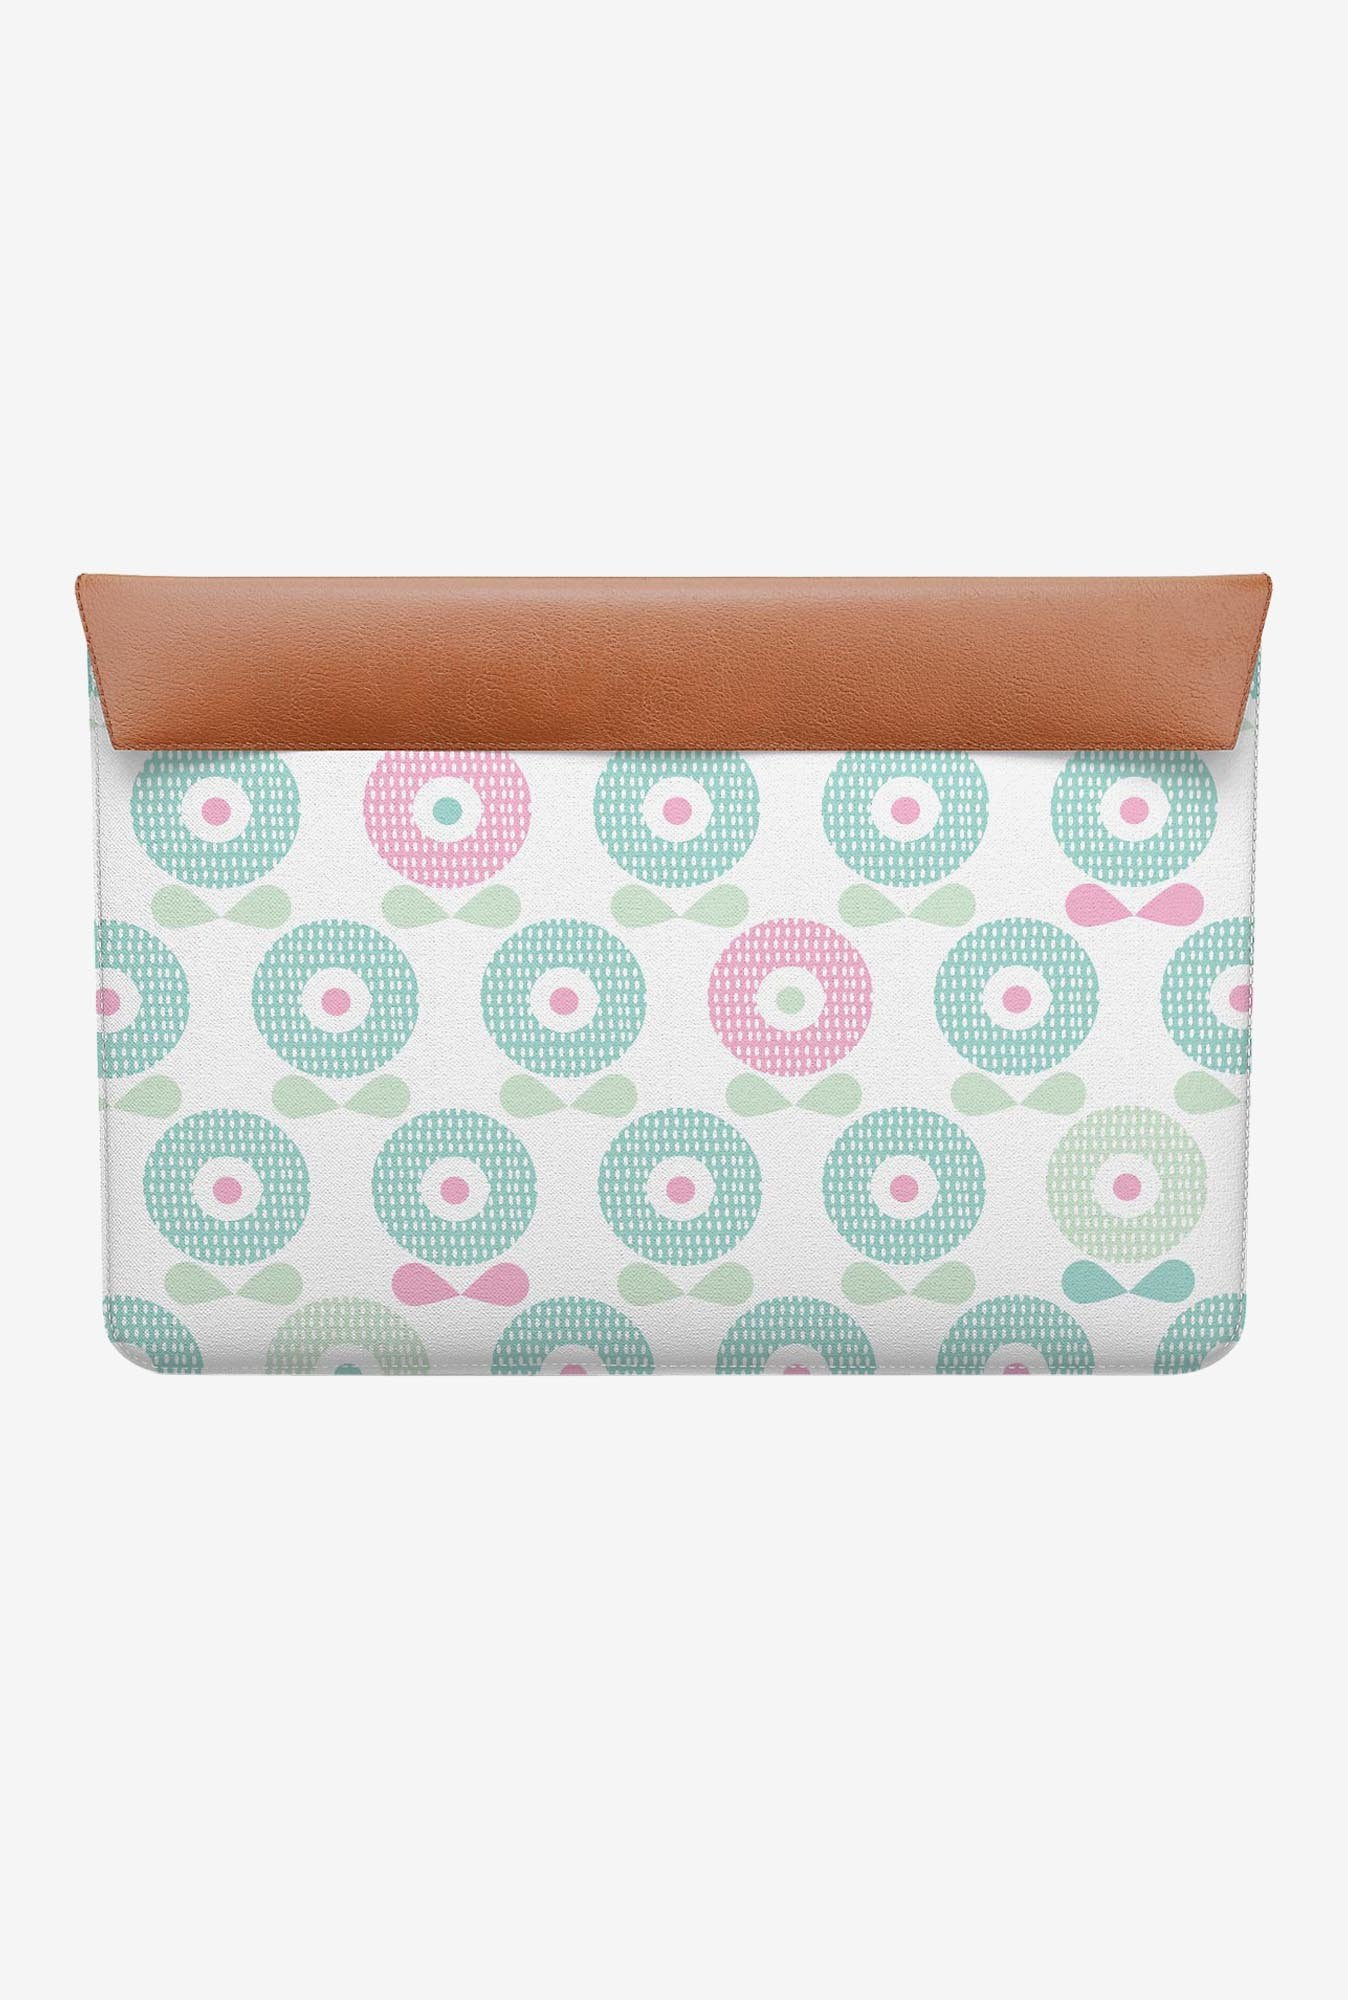 "DailyObjects Poppy Flowers MacBook 12"" Envelope Sleeve"